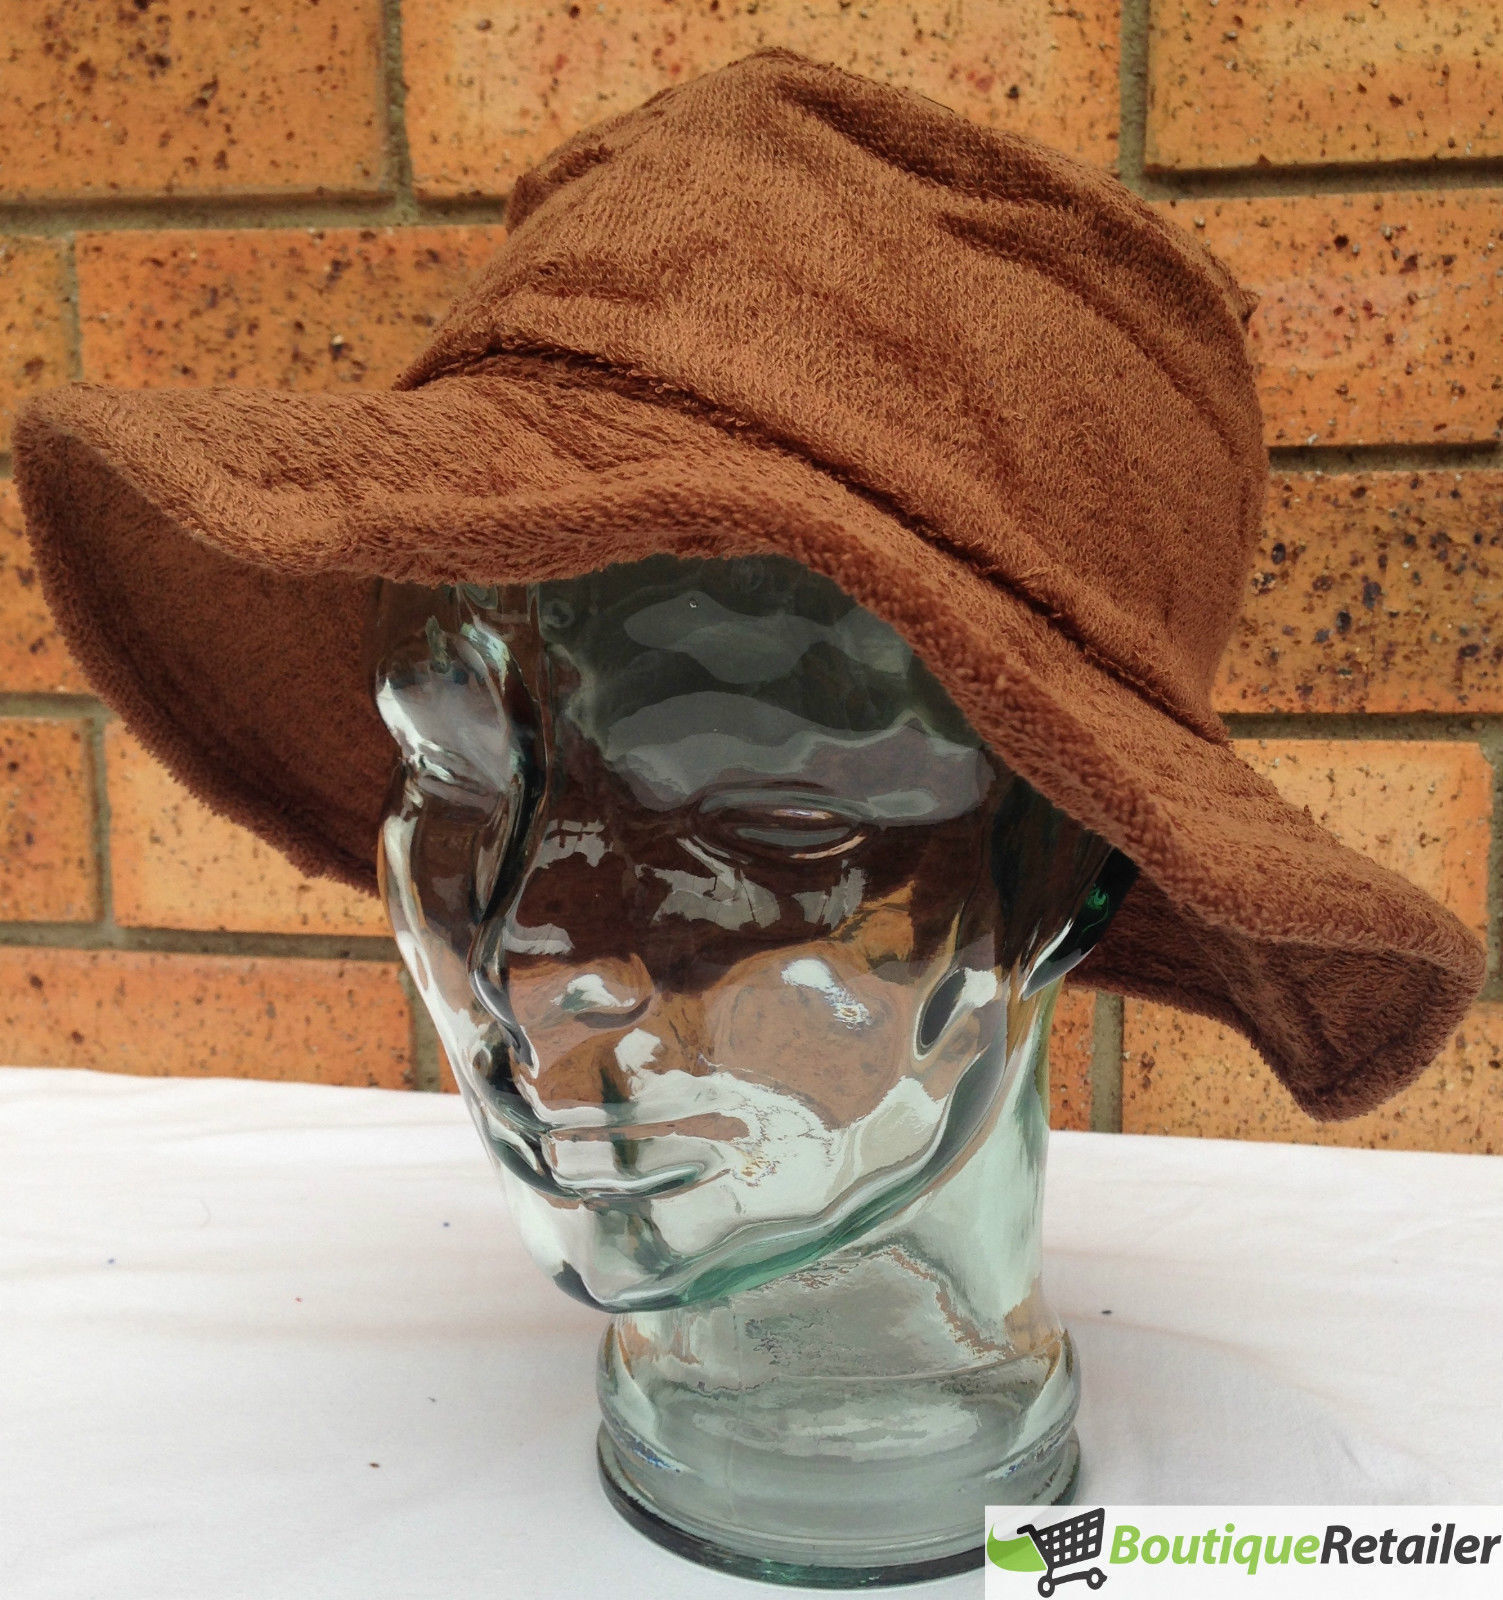 Terry-Towelling-BUCKET-HAT-Daggy-Fishing-Camping-Lad-Cap-Retro-New-100-COTTON thumbnail 18